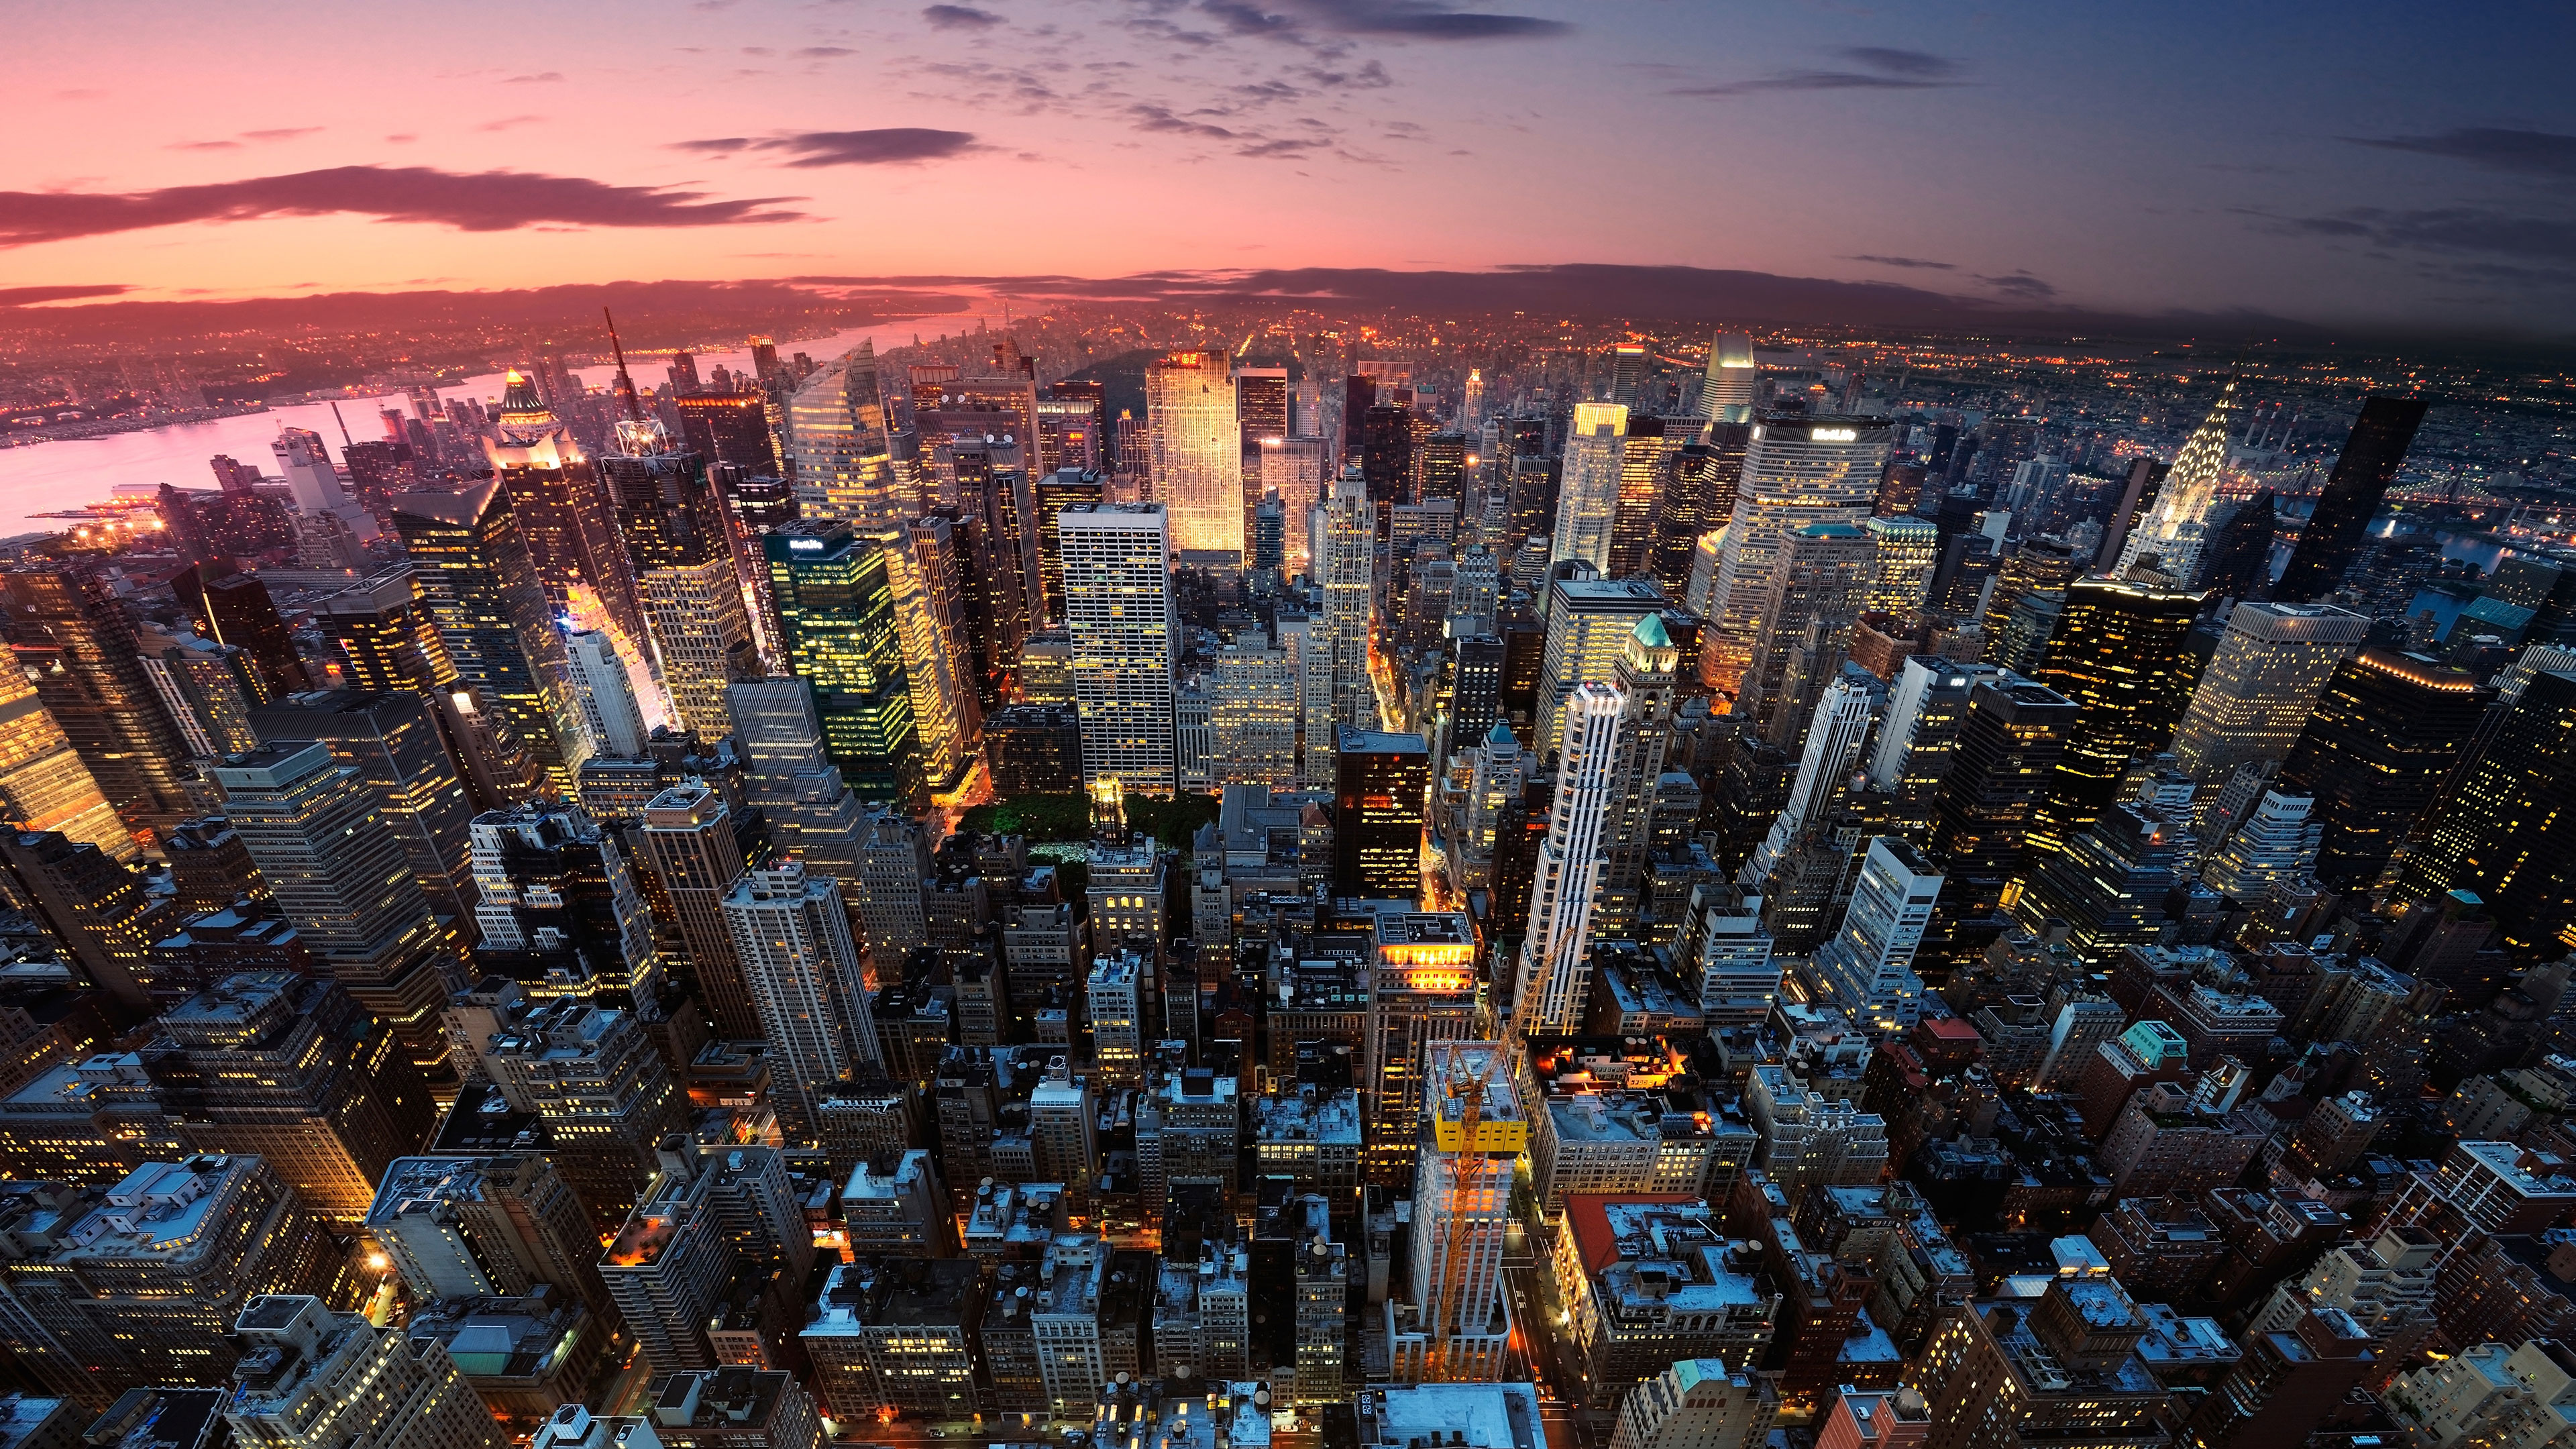 227 New York HD Wallpapers | Backgrounds - Wallpaper Abyss